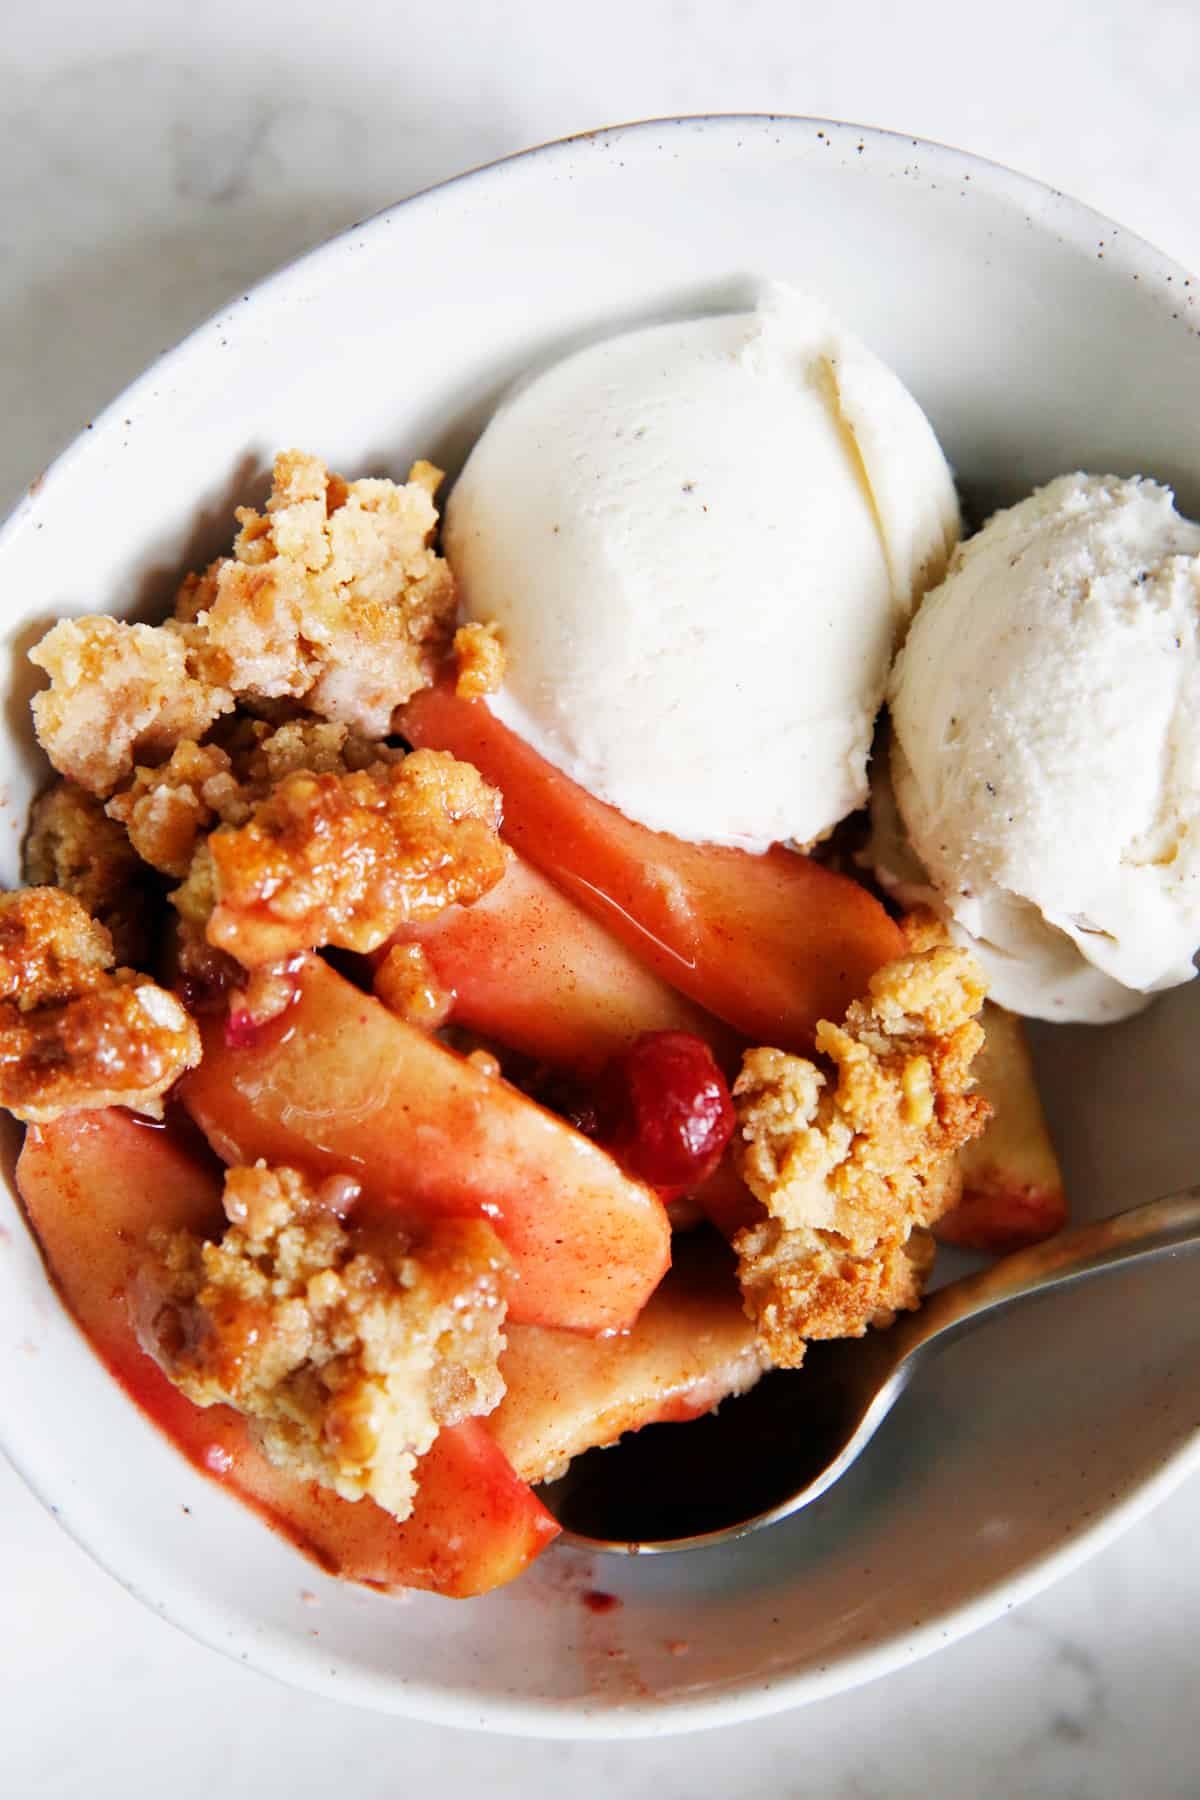 Paleo apple crisp recipe in a bowl.